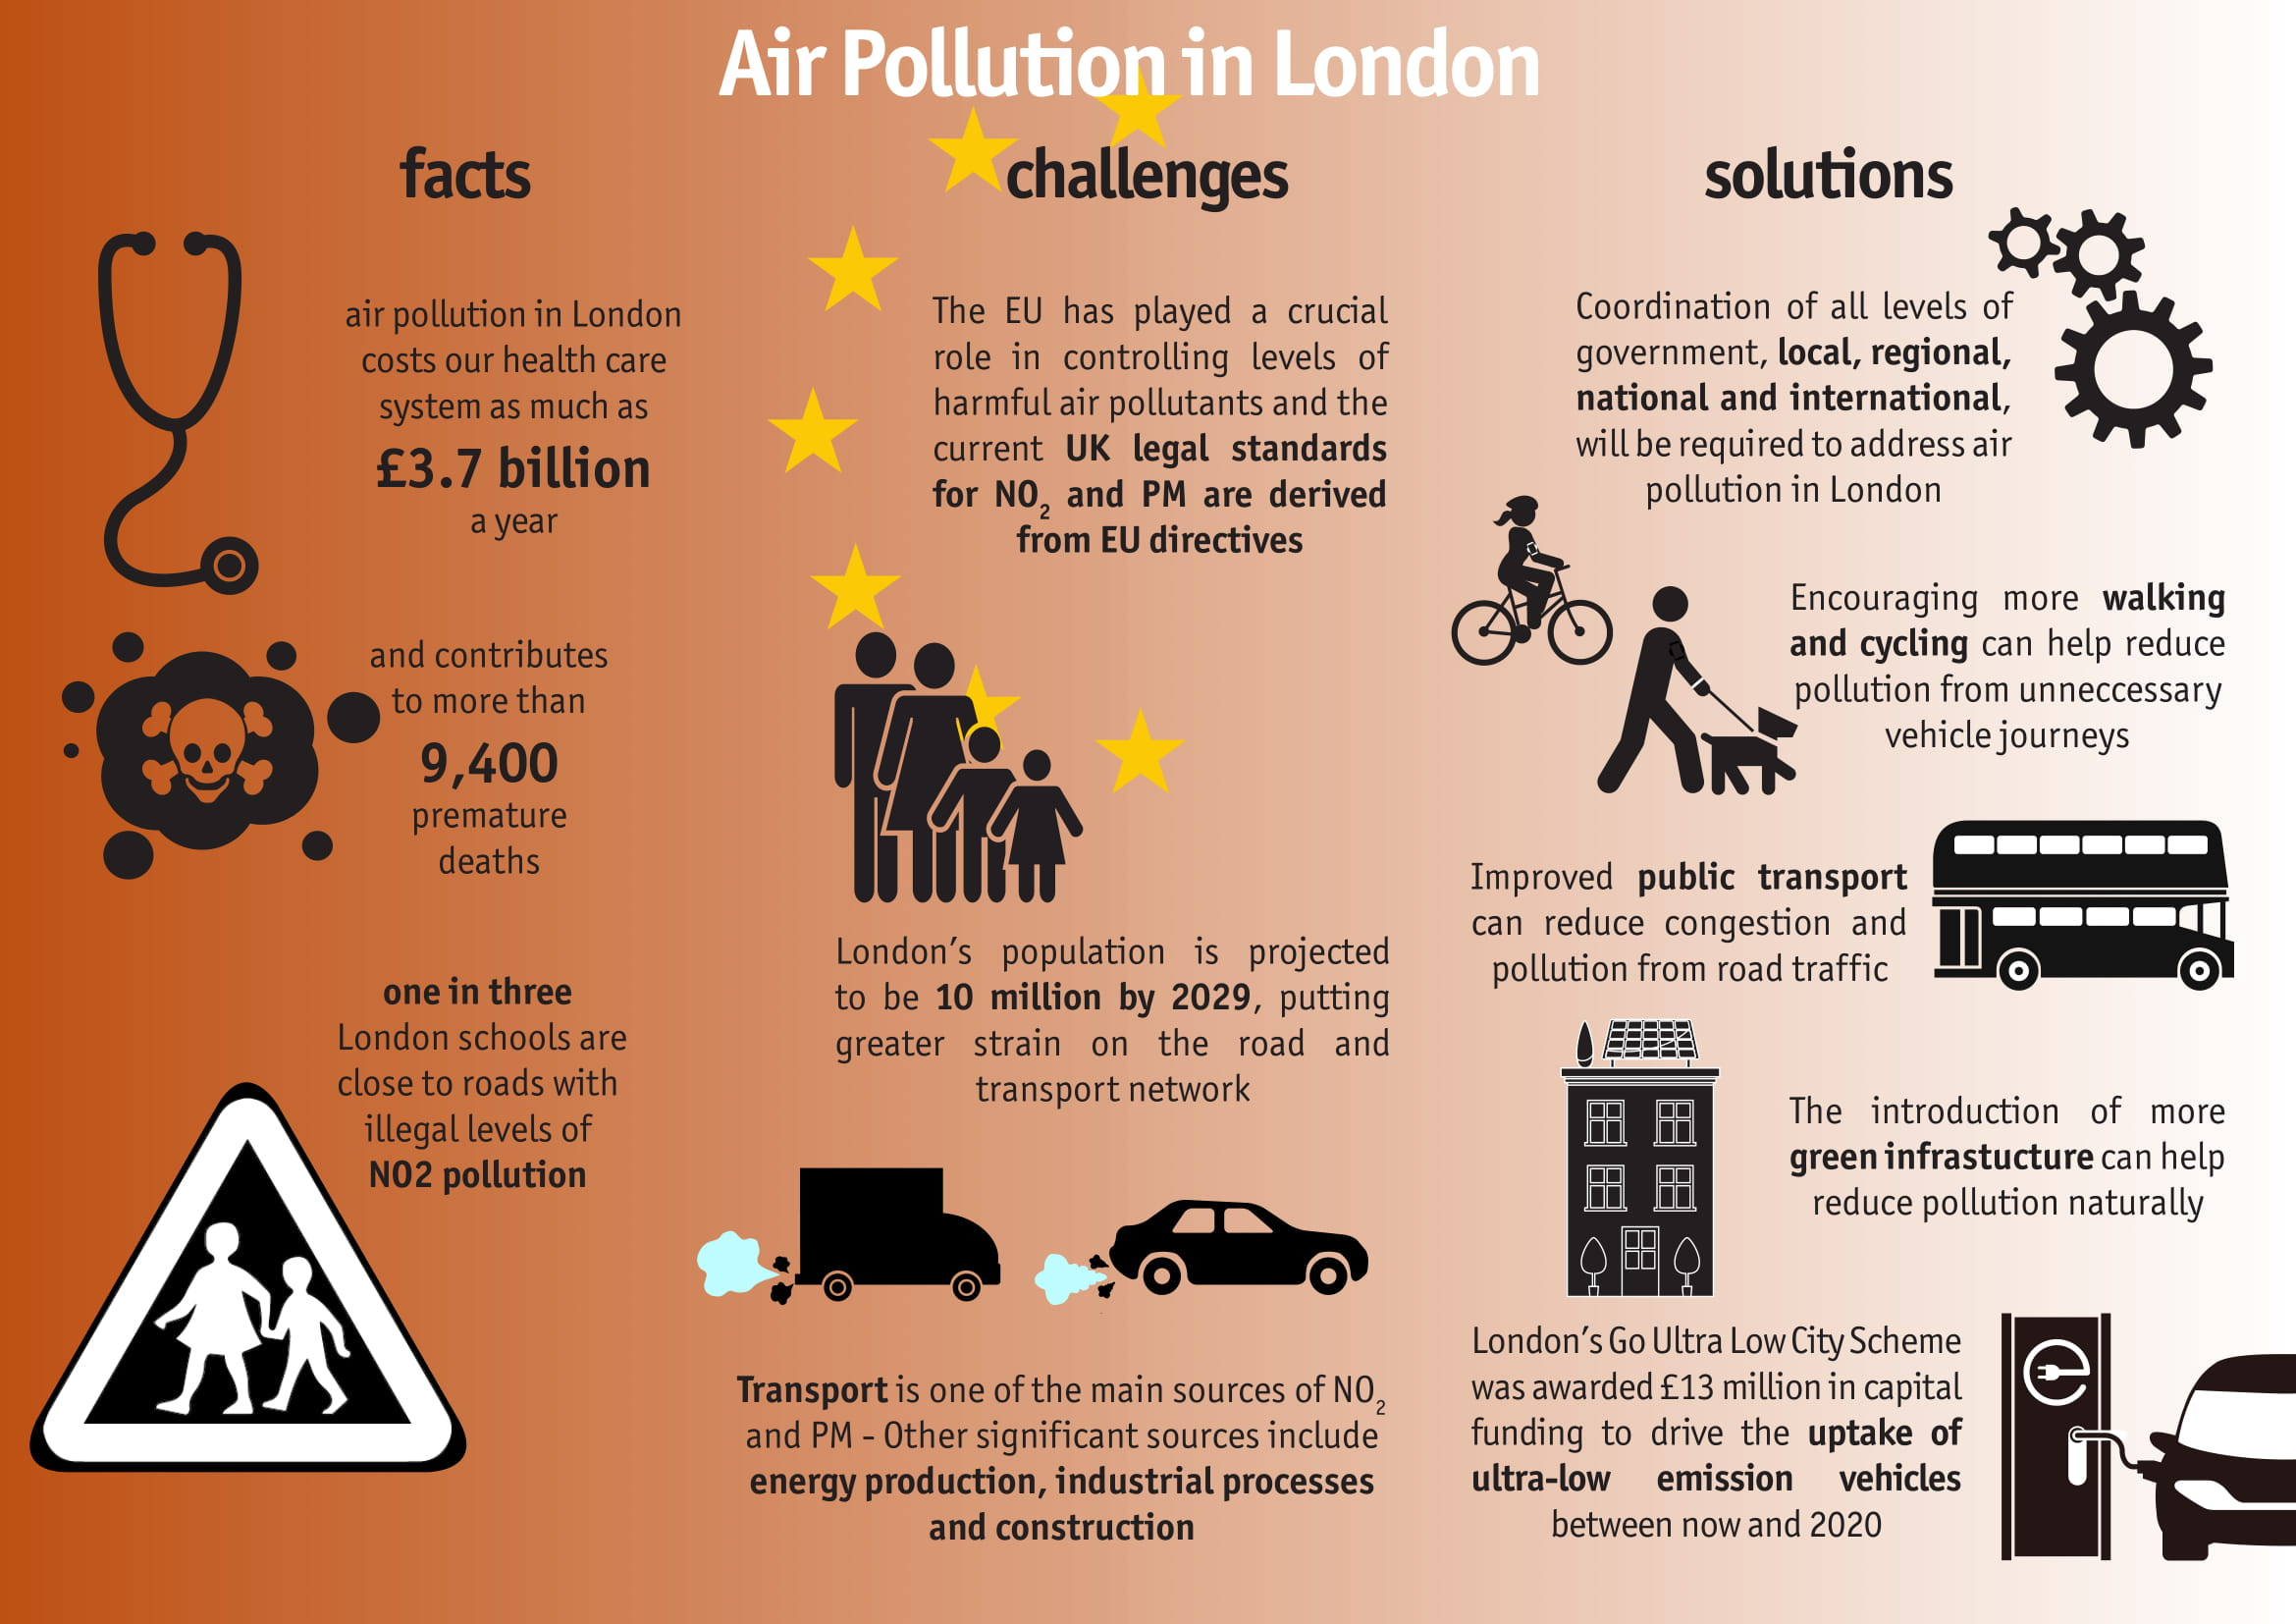 Air Pollution Has Received A Lot Of Media Attention In Recent Years With Sometimes Conflicting Messages And Often Very Technical Information